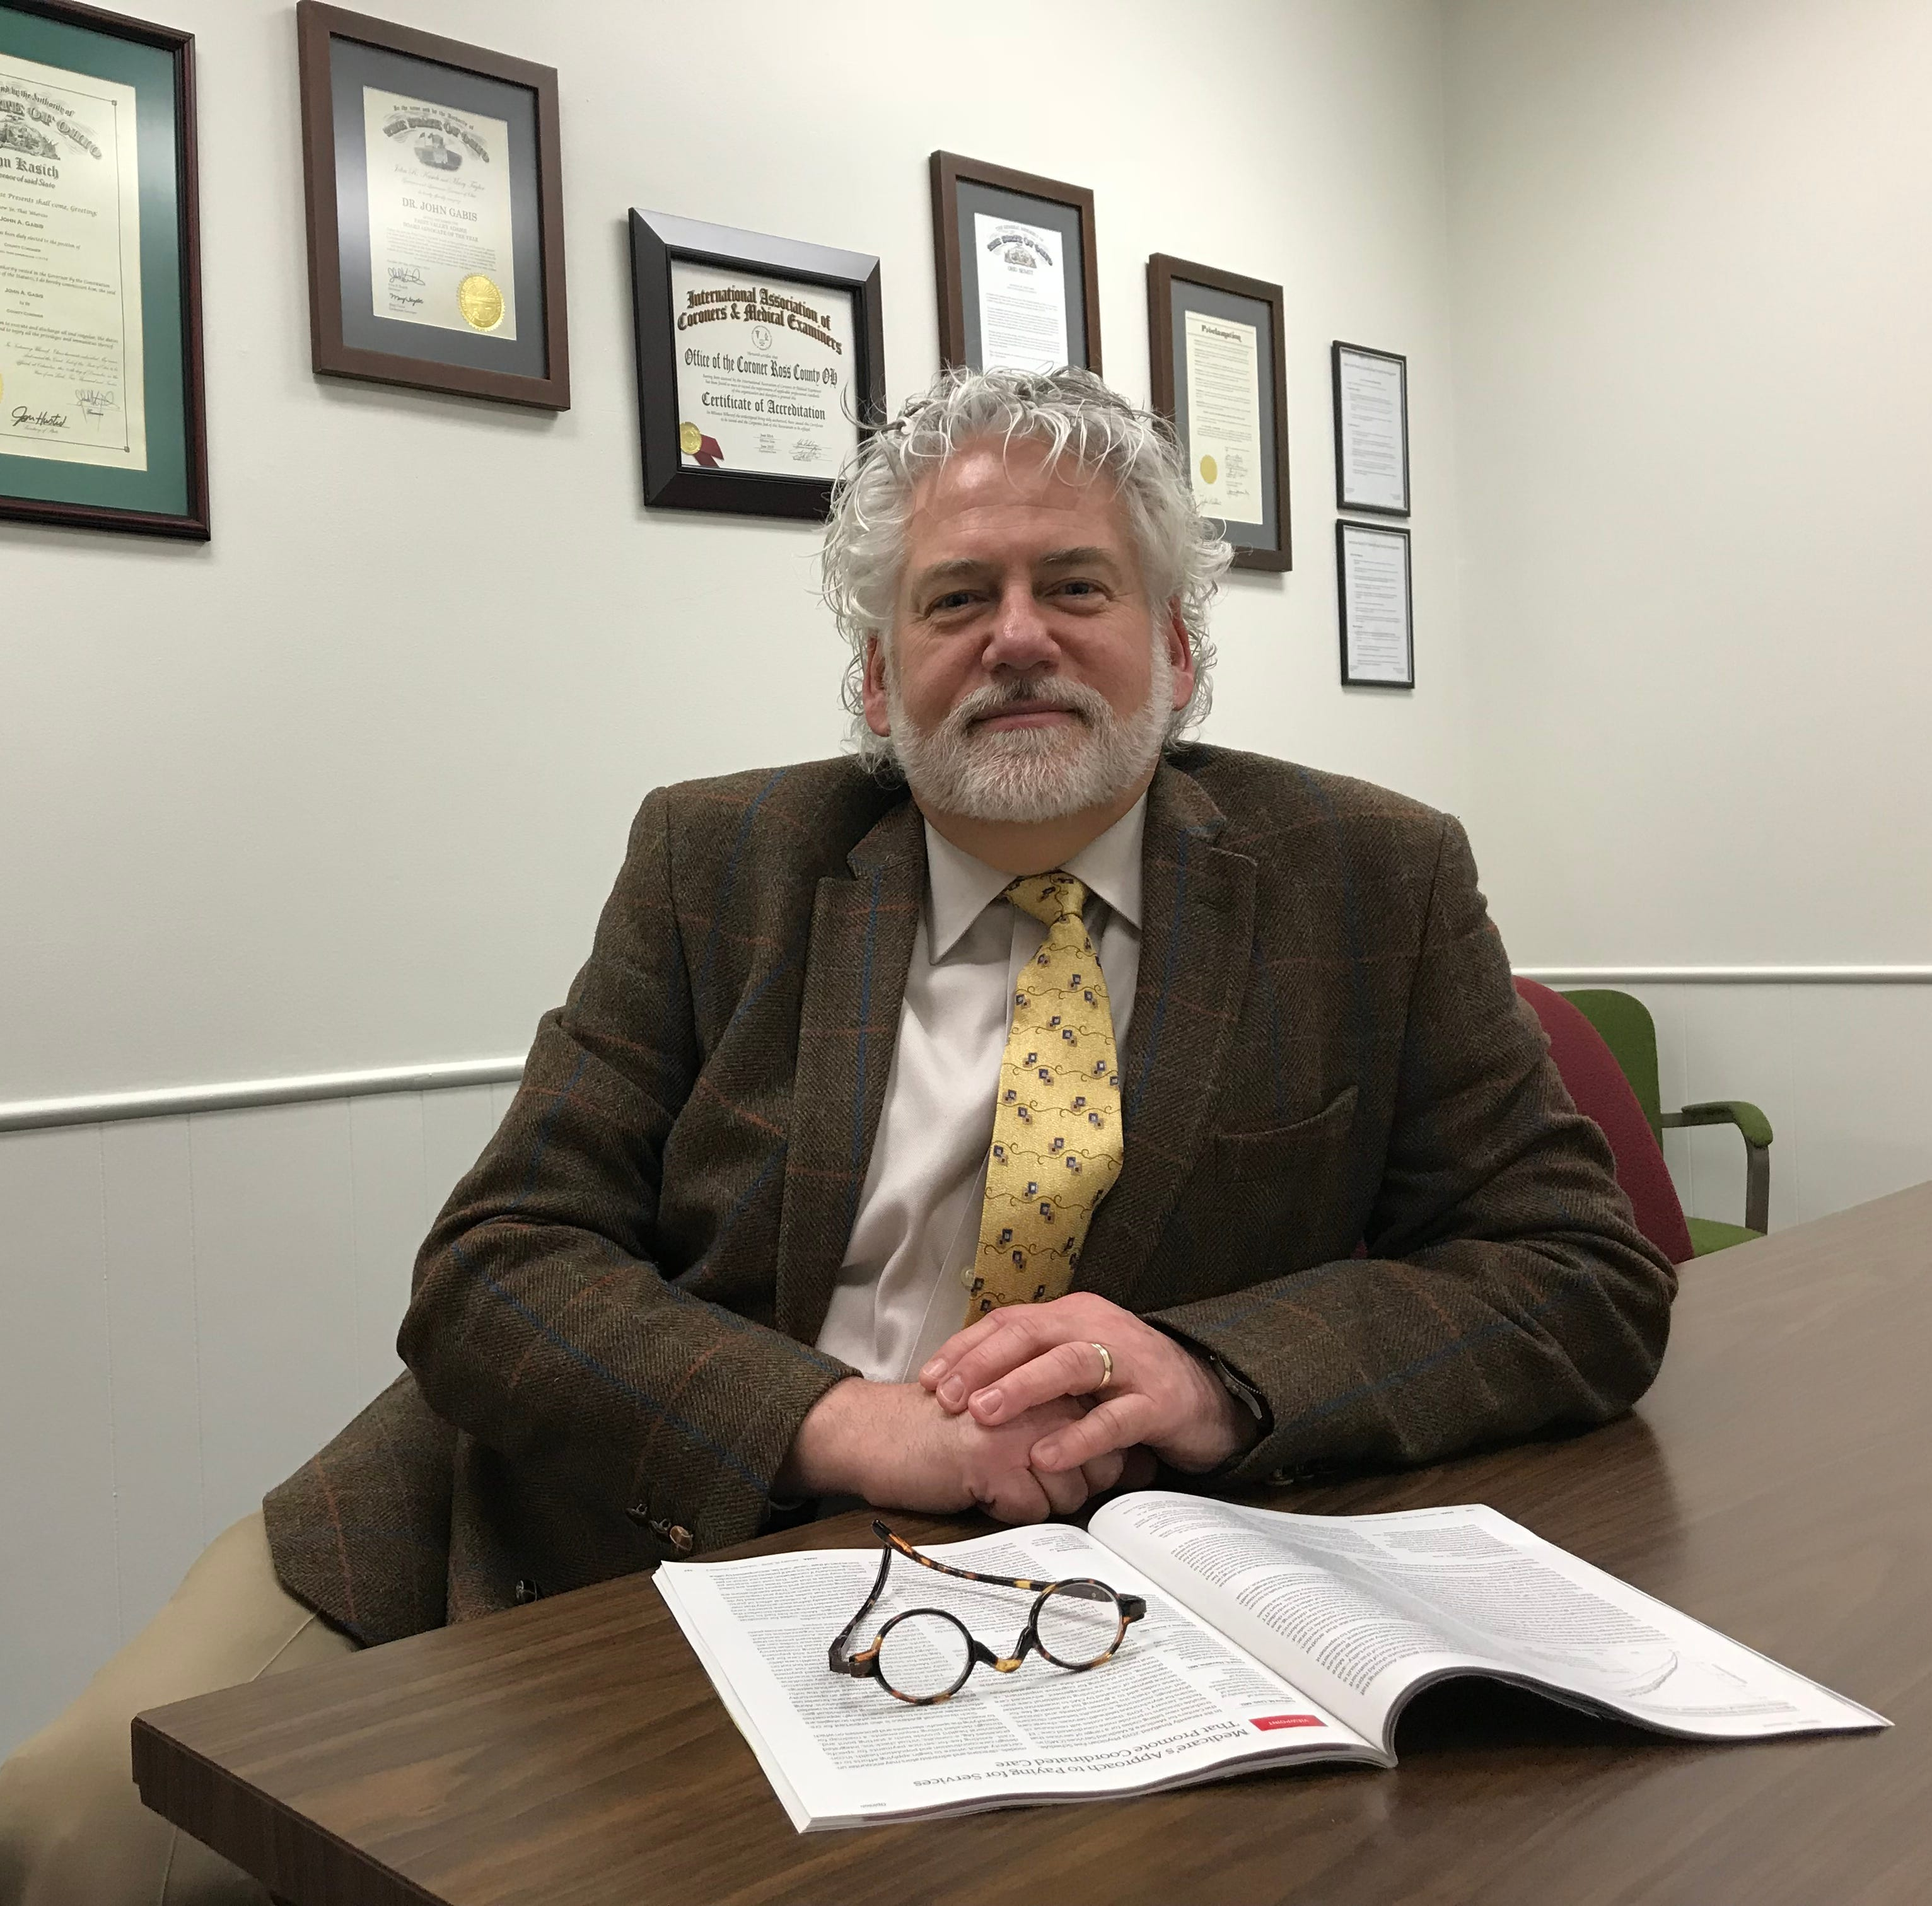 Dr. John Gabis retires as Ross County coroner, will continue opiate fight despite fatigue